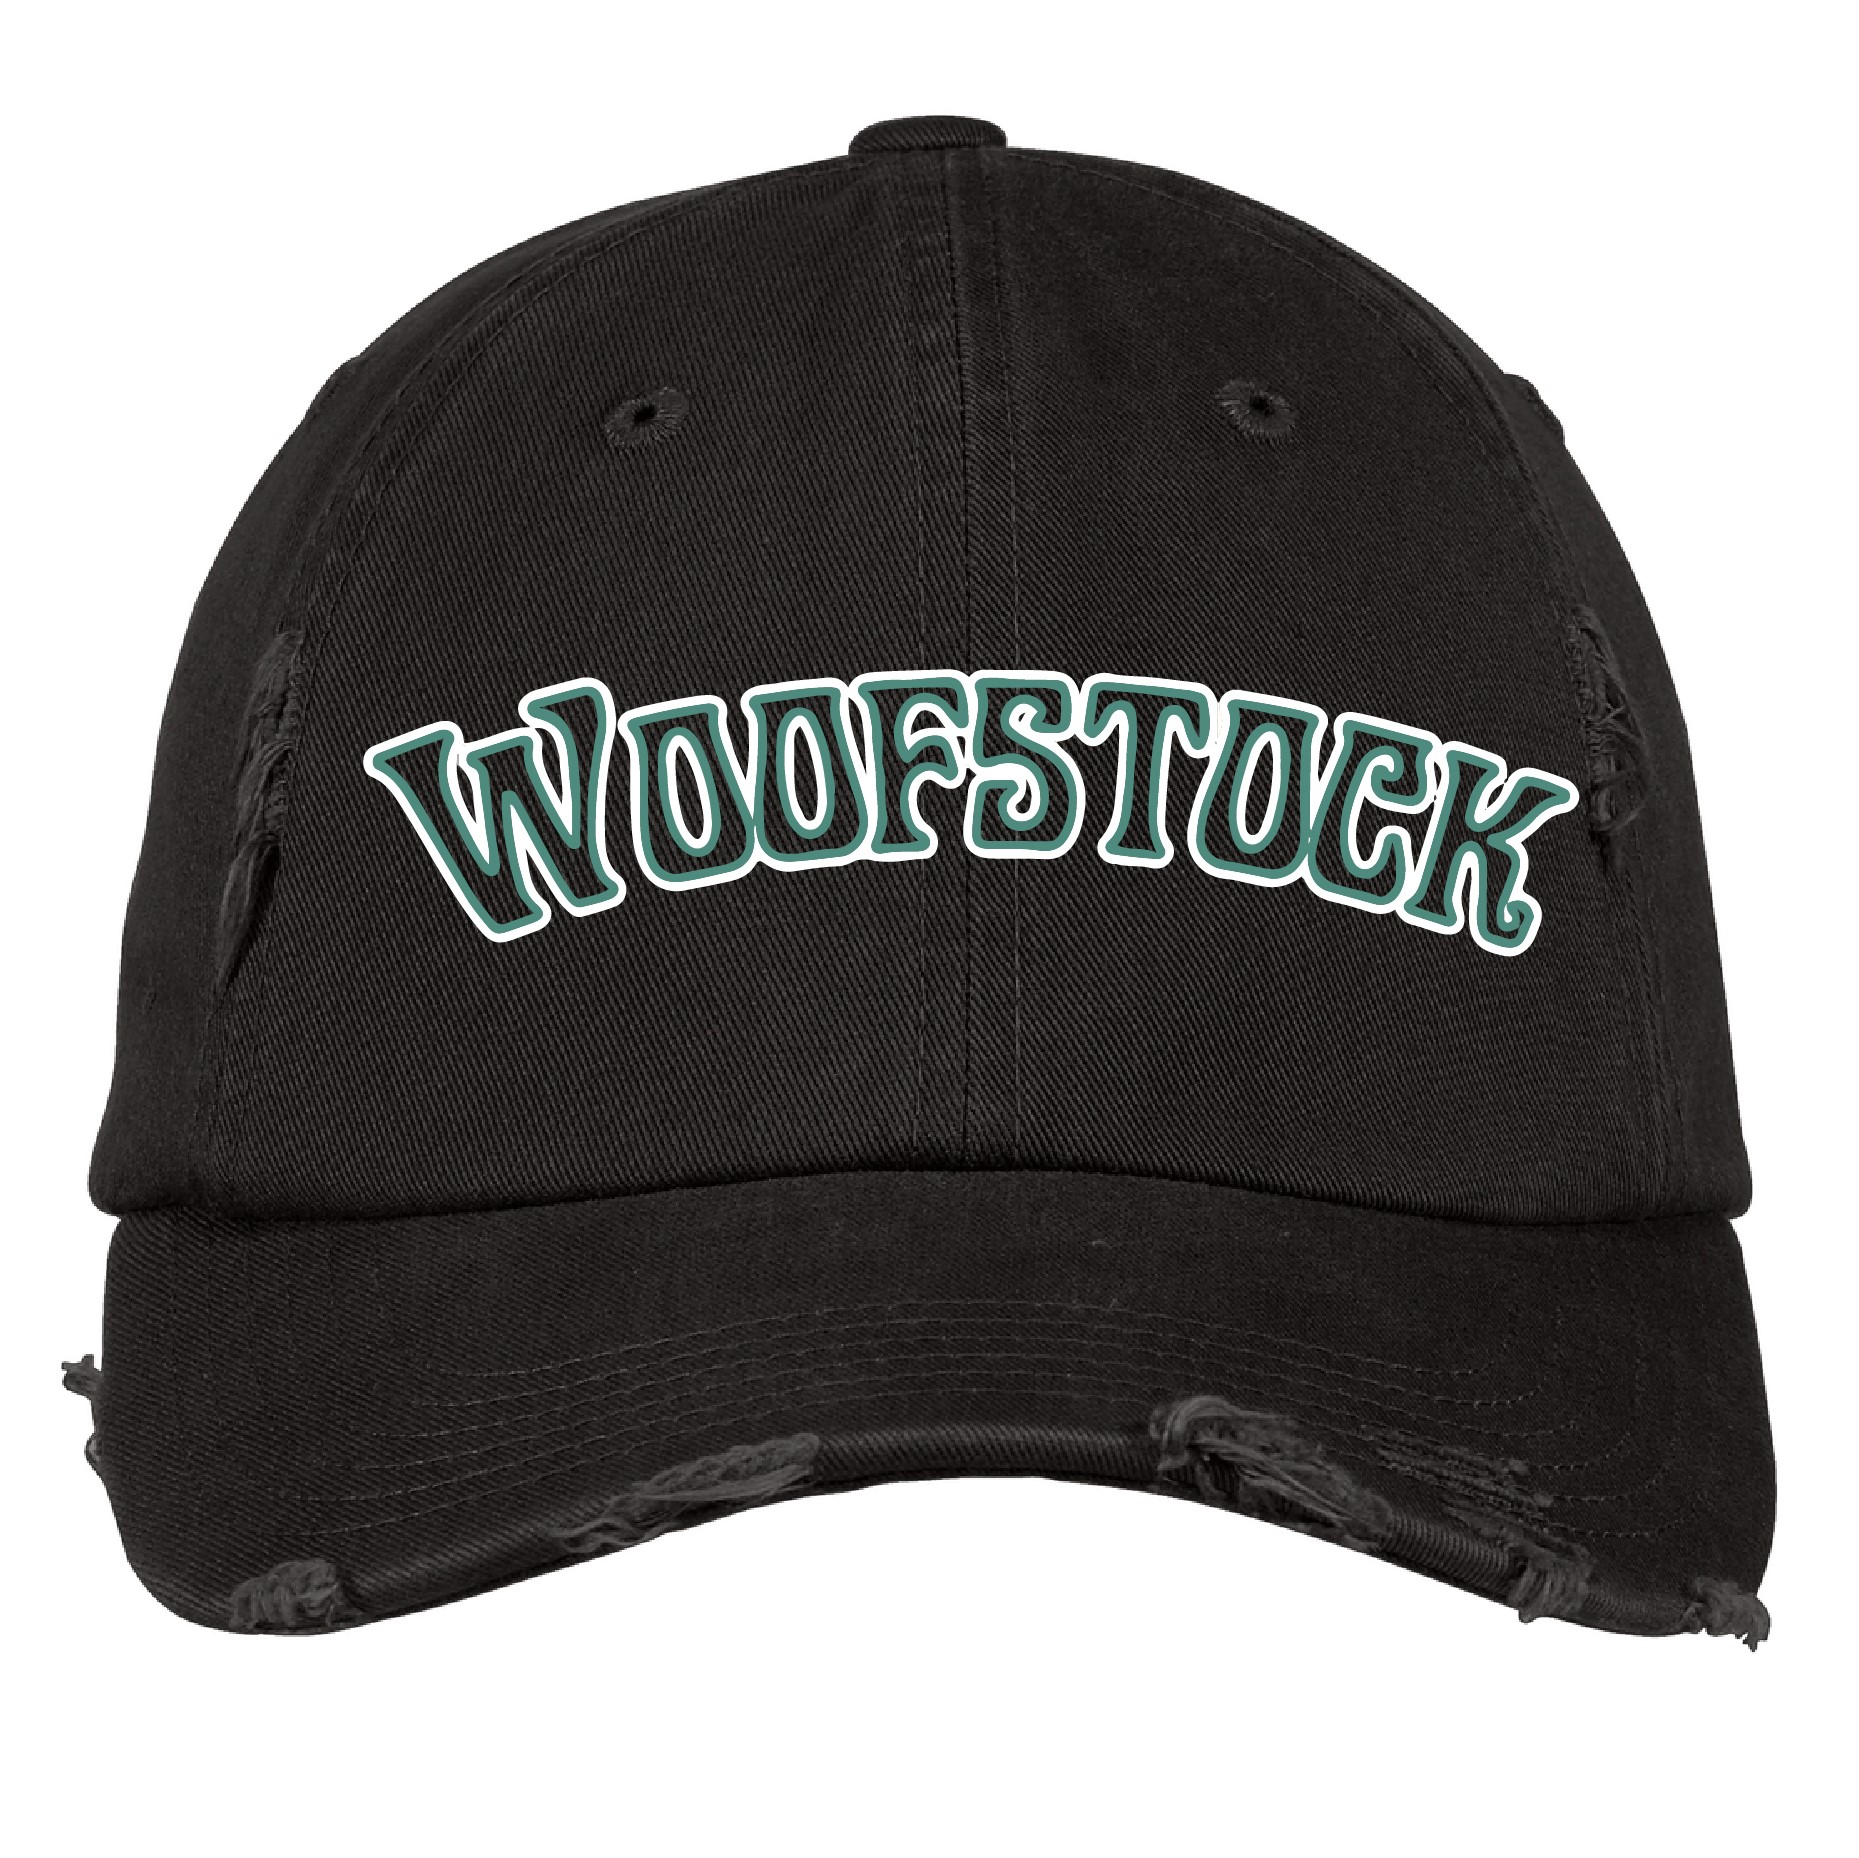 Copy of $20 Distressed Woofstock Hat